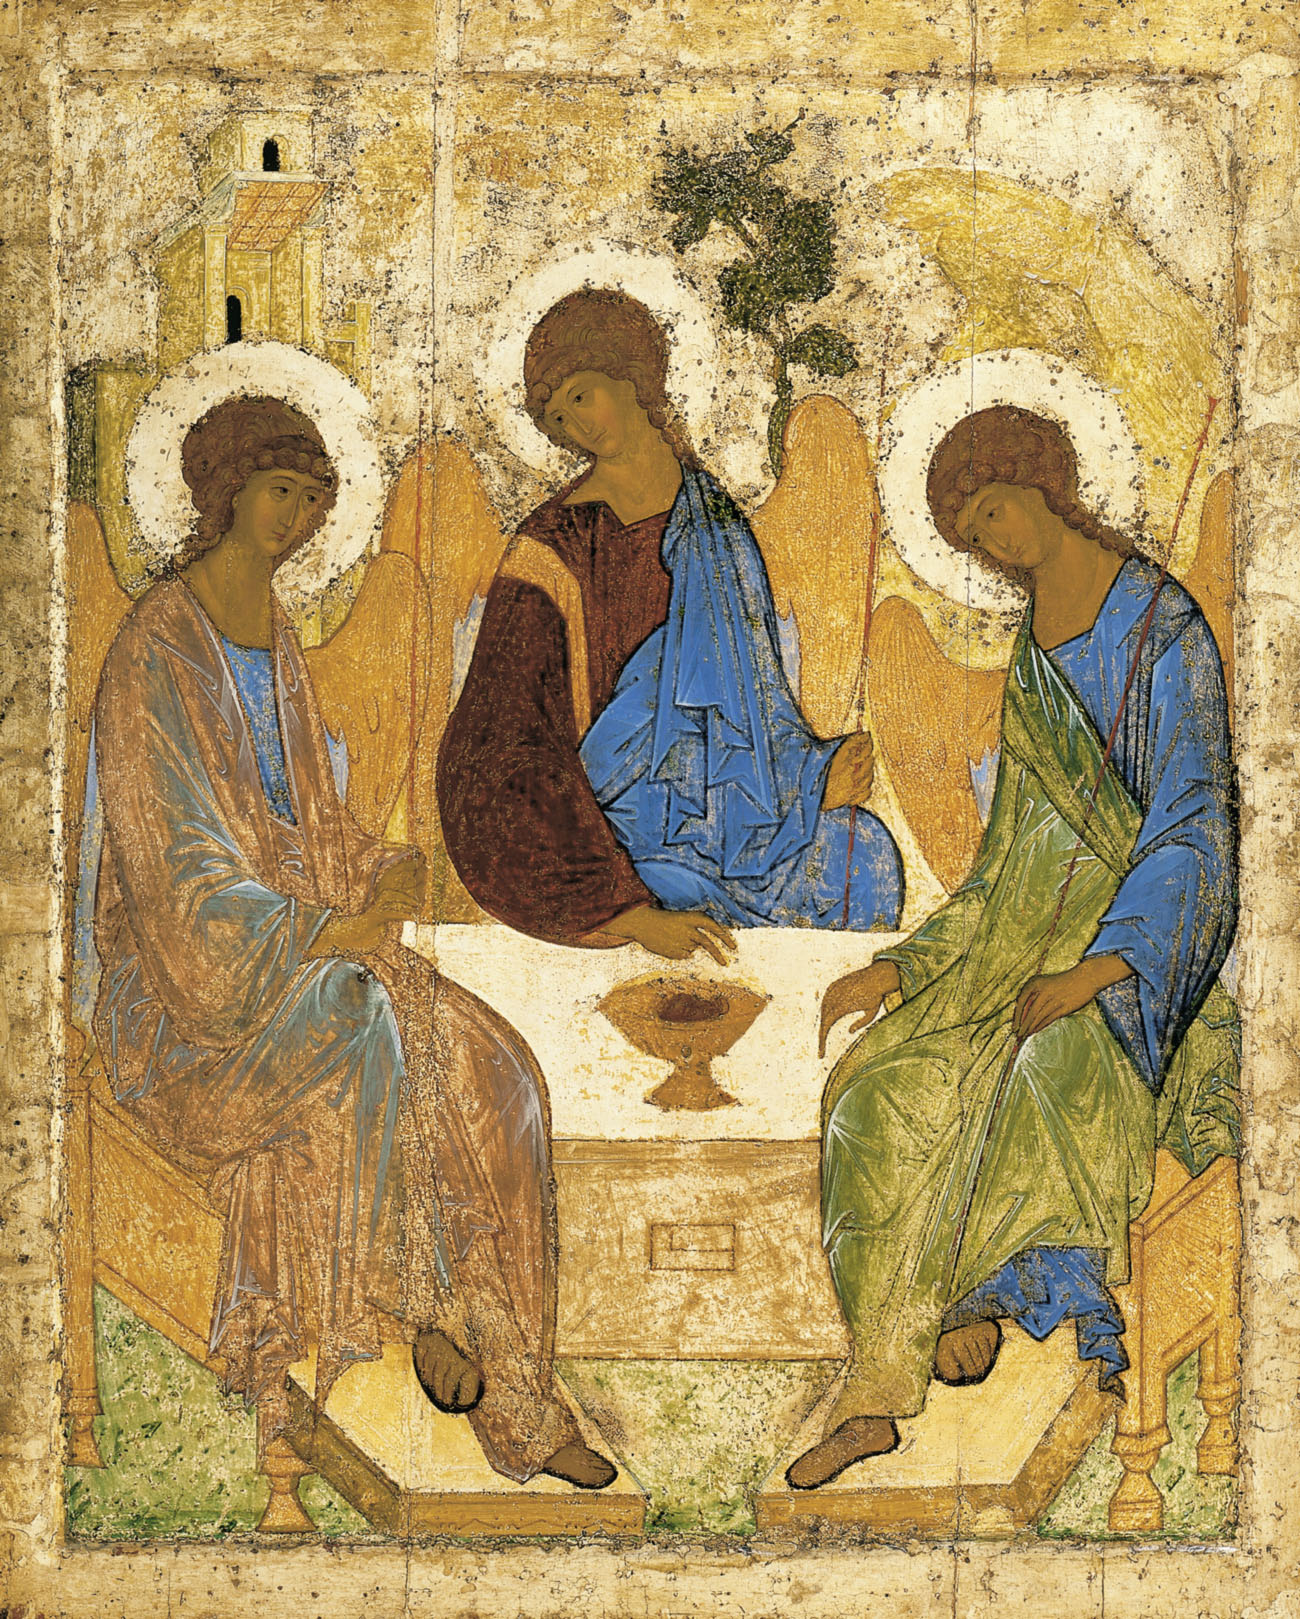 s-there-God-chosen-people-nation-today-Holy_Irinity_Andrey_Rublev_icon